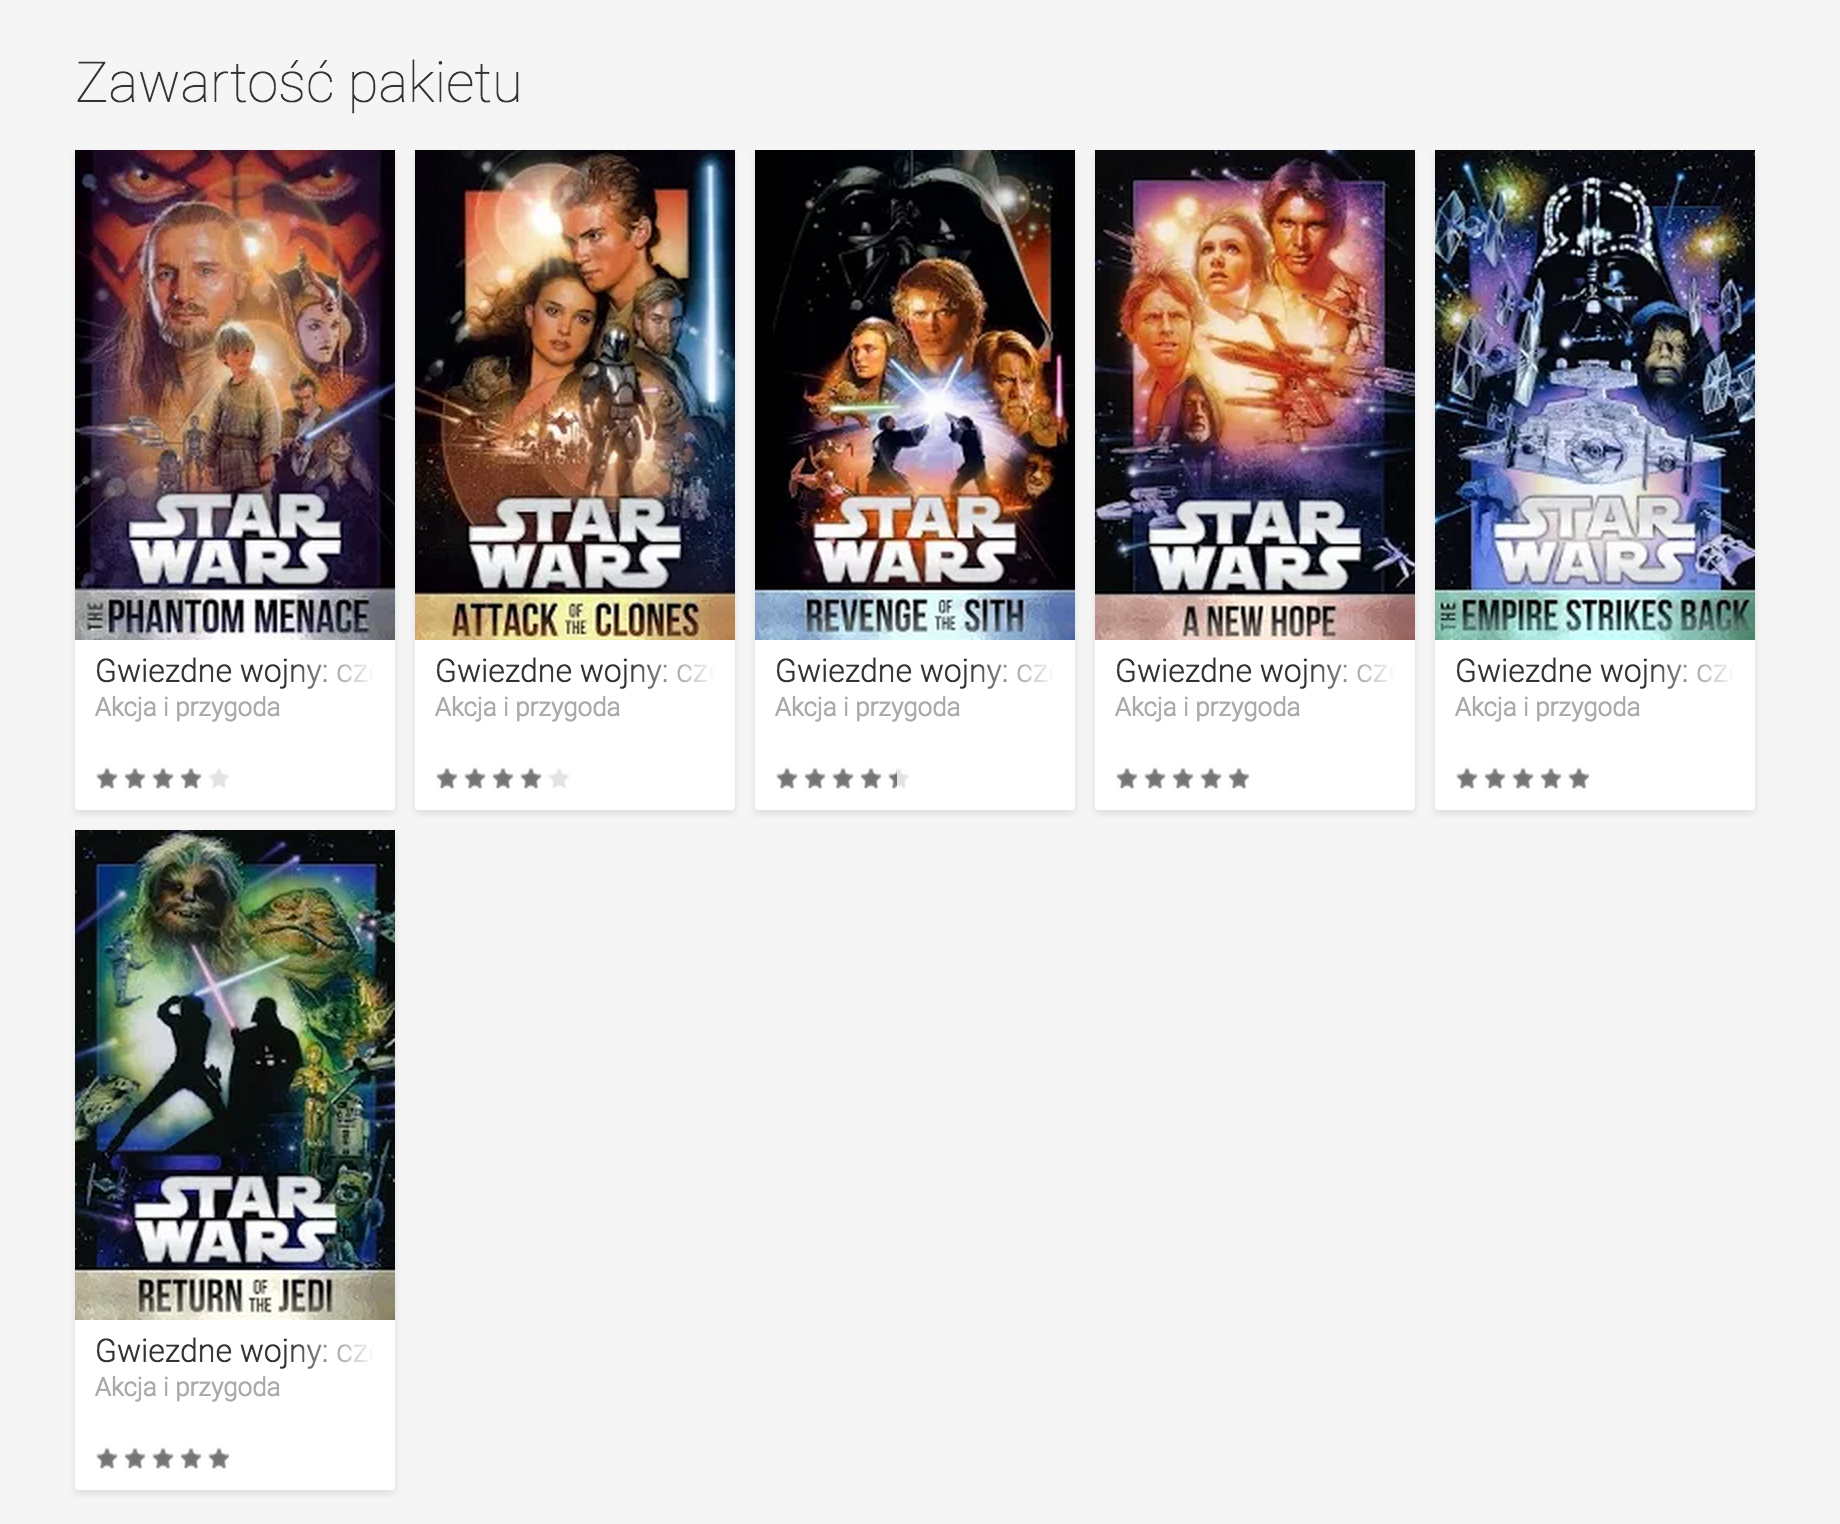 Star Wars: The Digital Movie Collection na Google Play